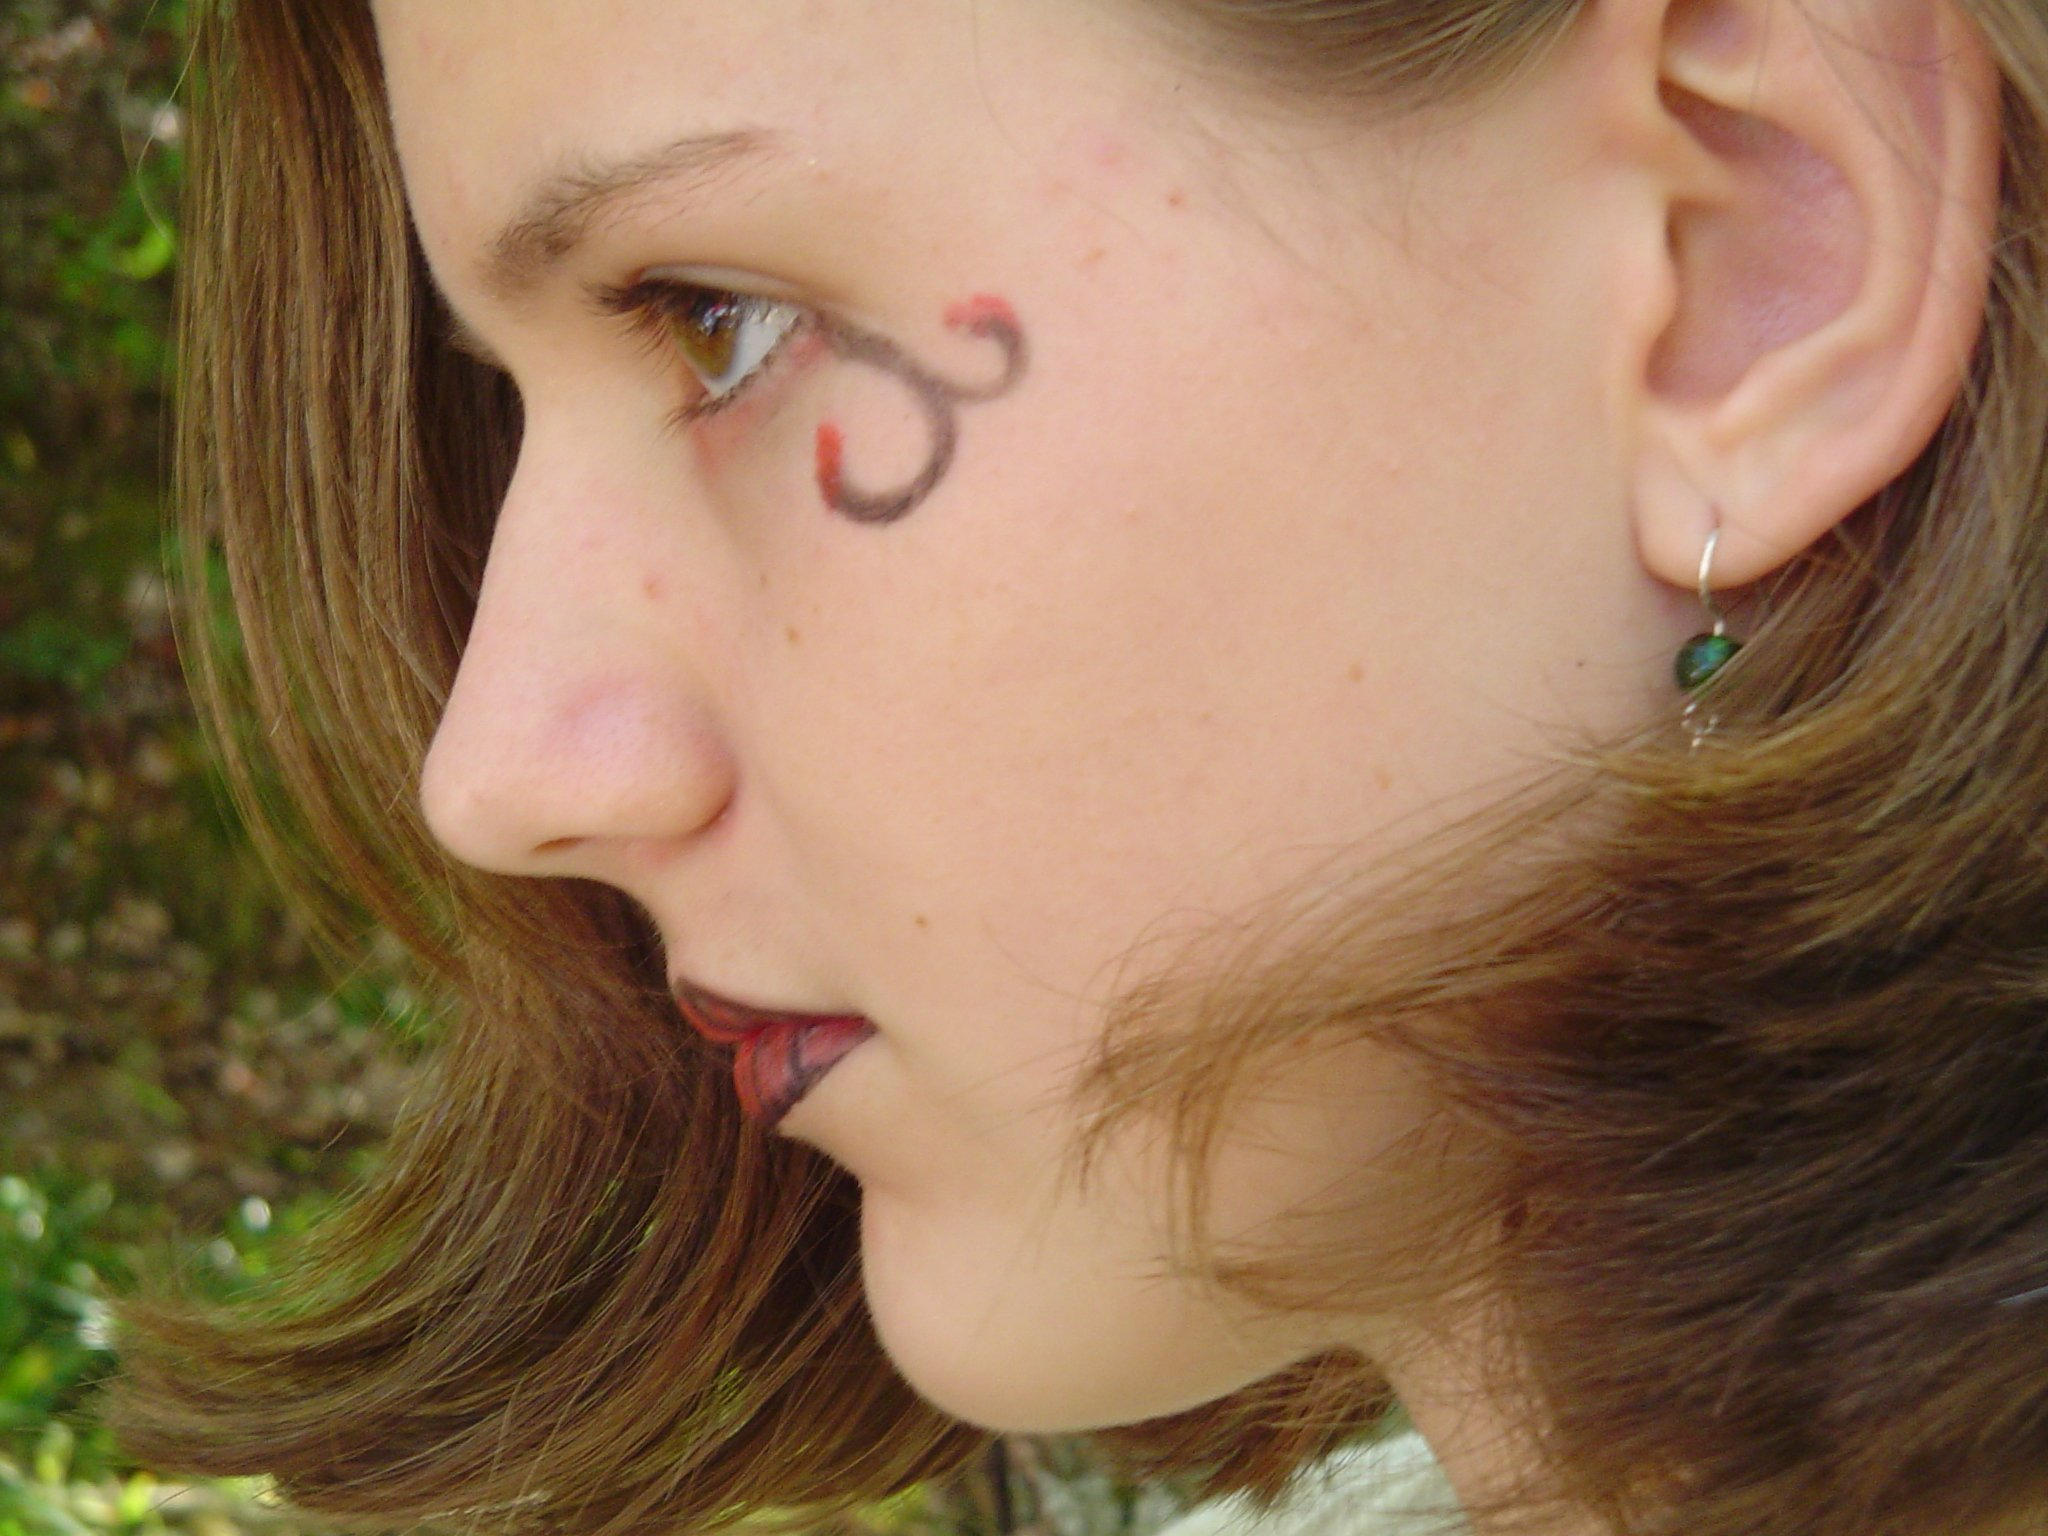 profile aka fun with eyeliner by LuckyStock